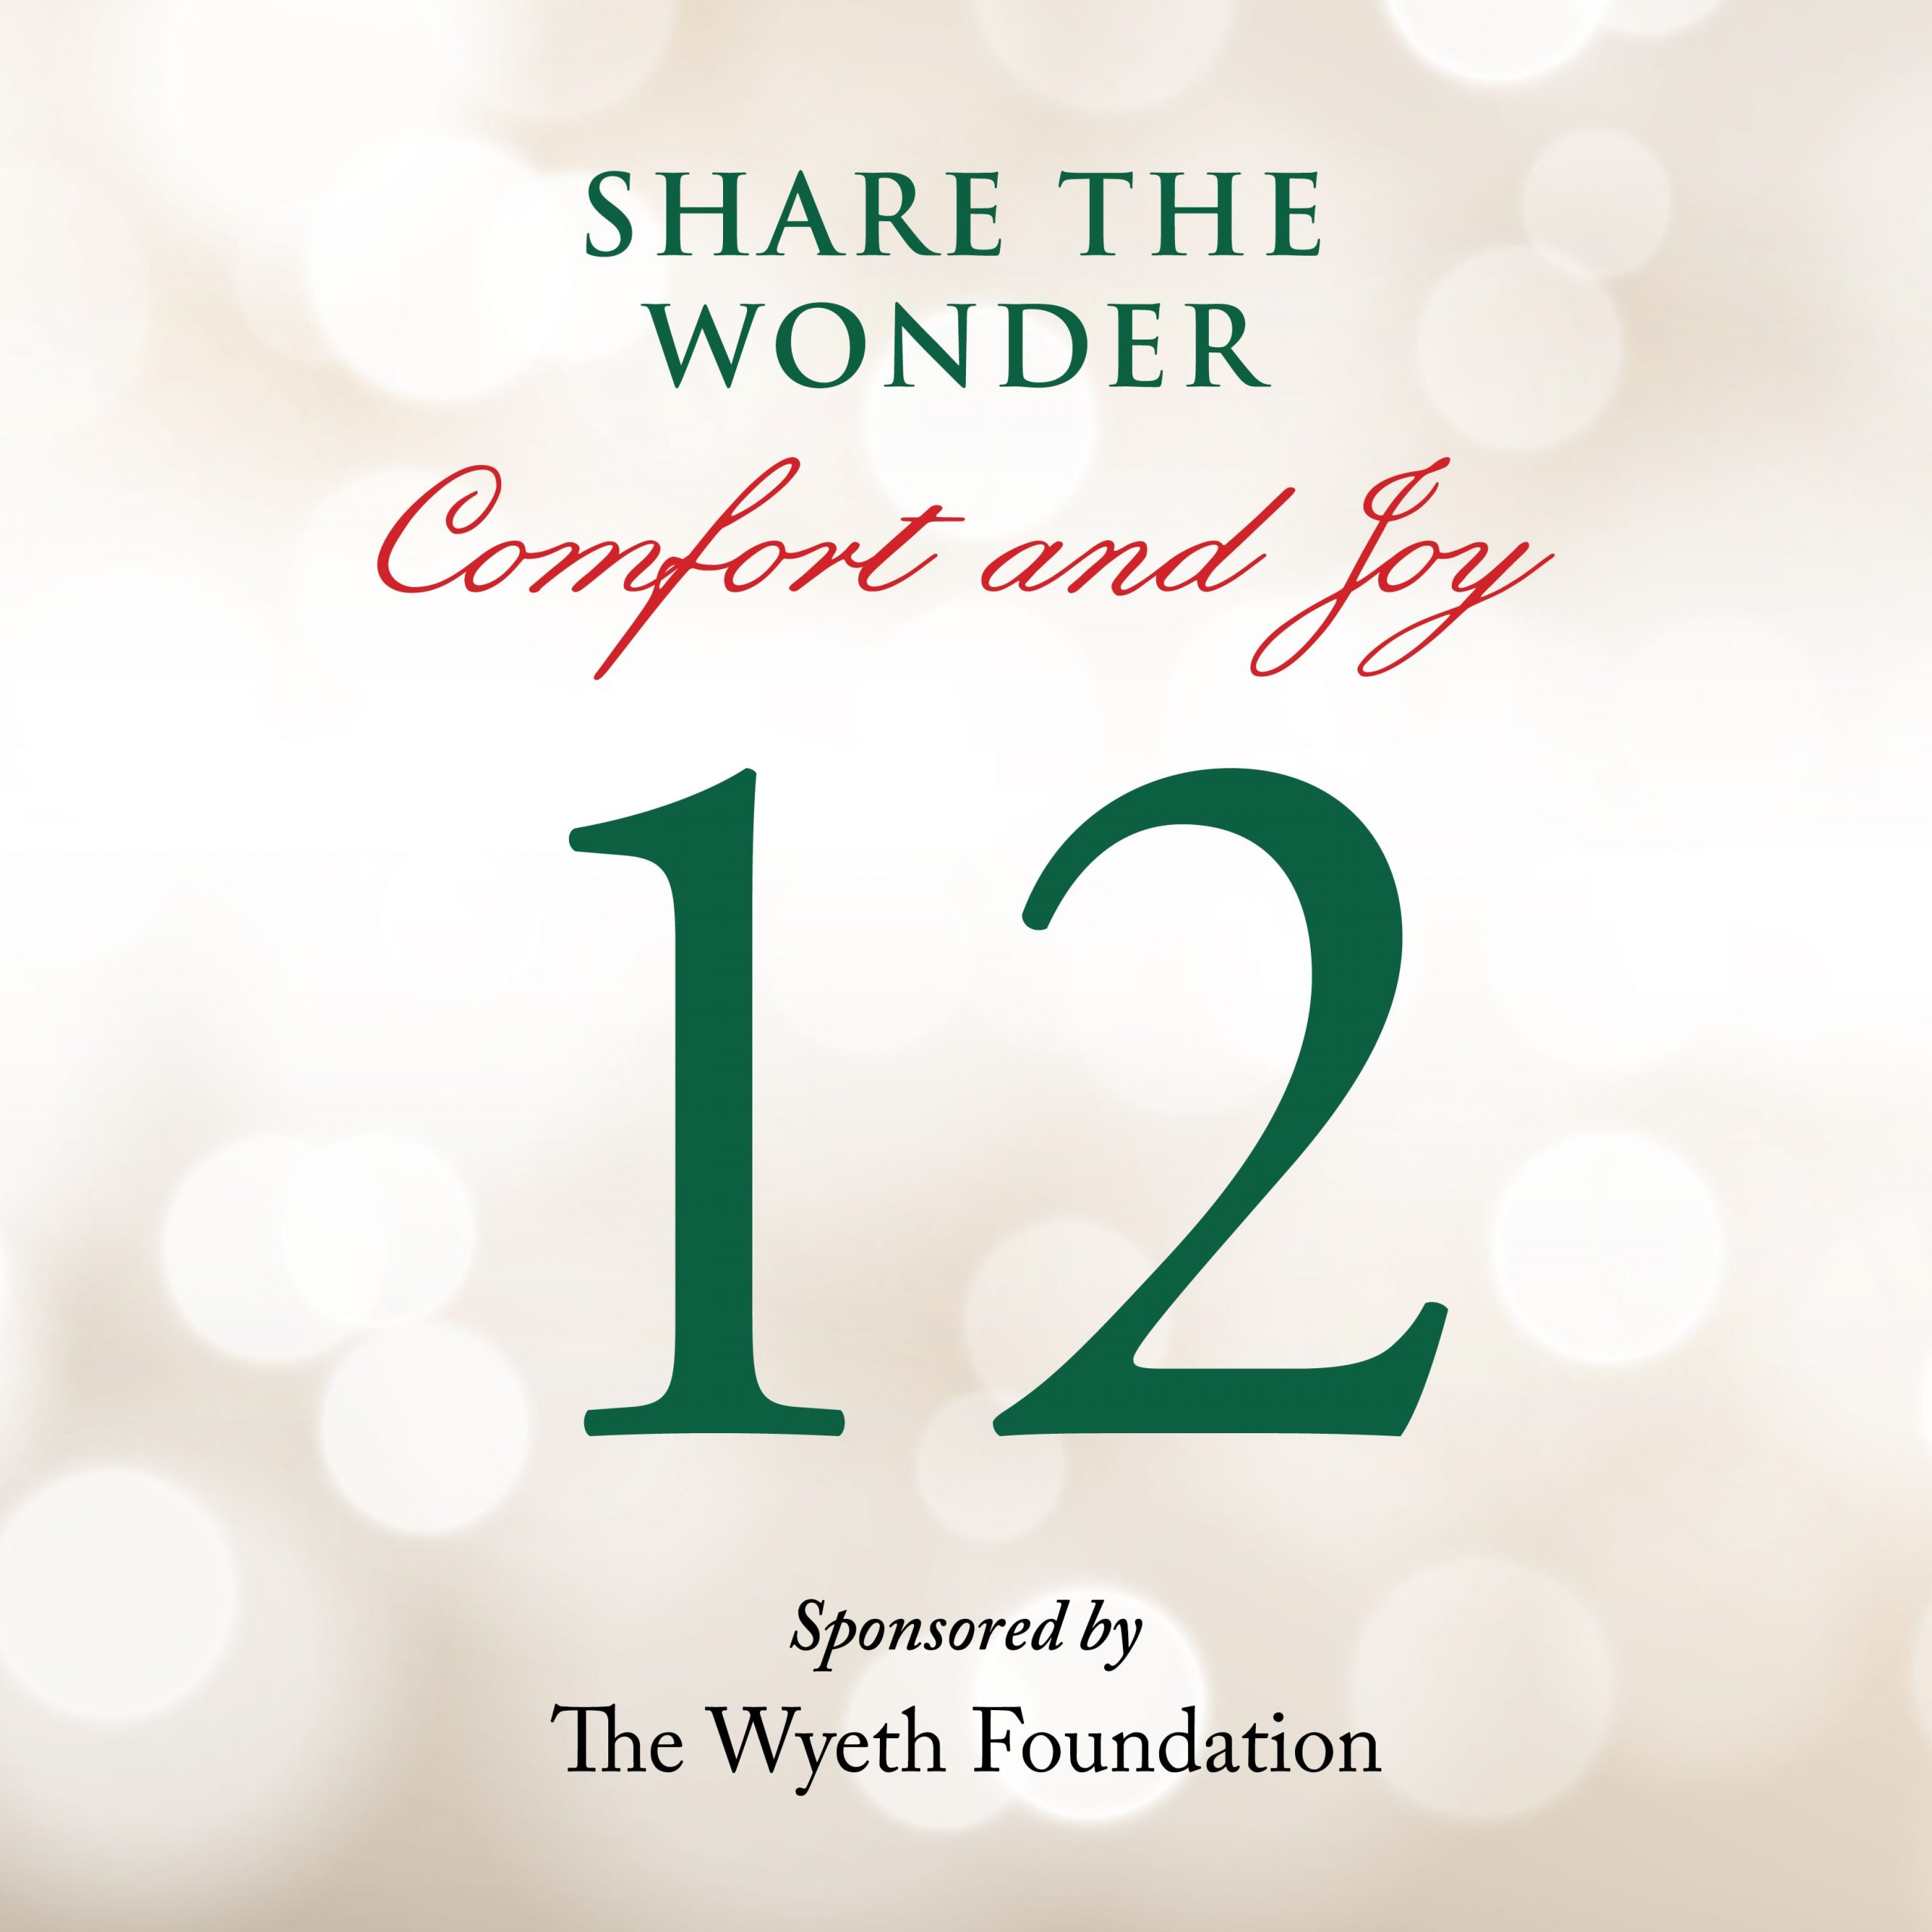 Day 12 of Share the Wonder: December 9